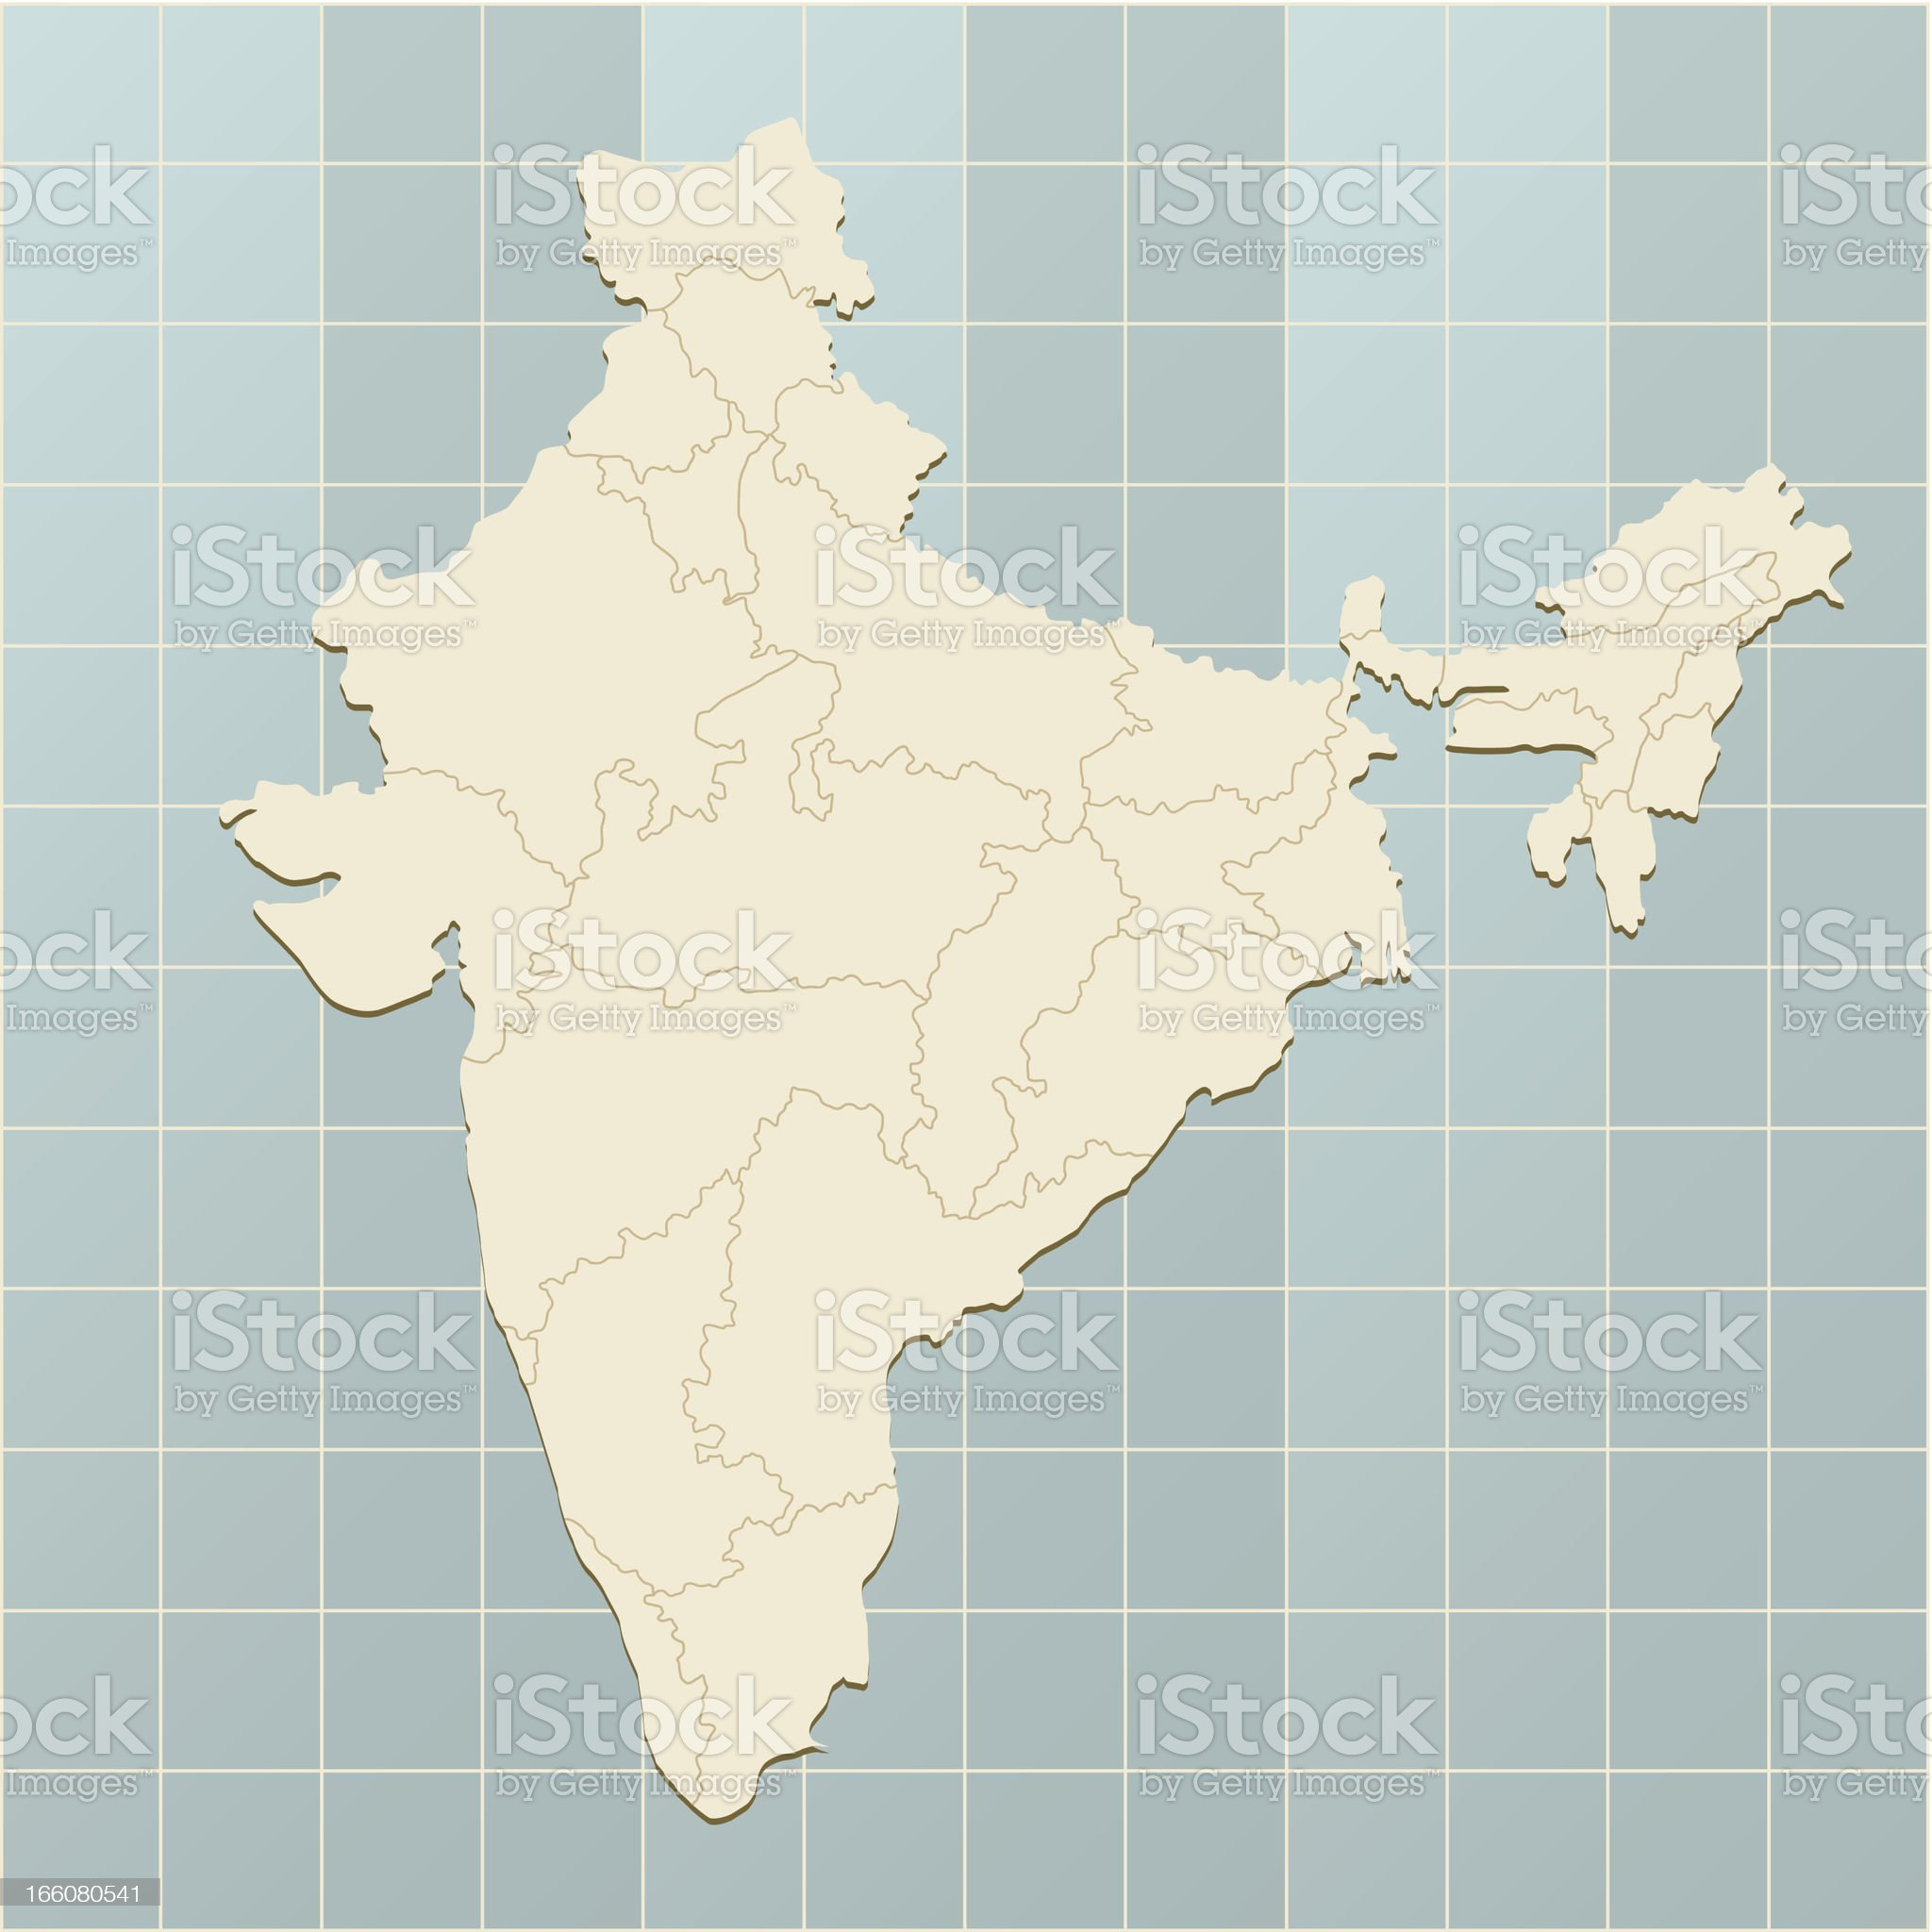 India map on grid royalty-free stock vector art